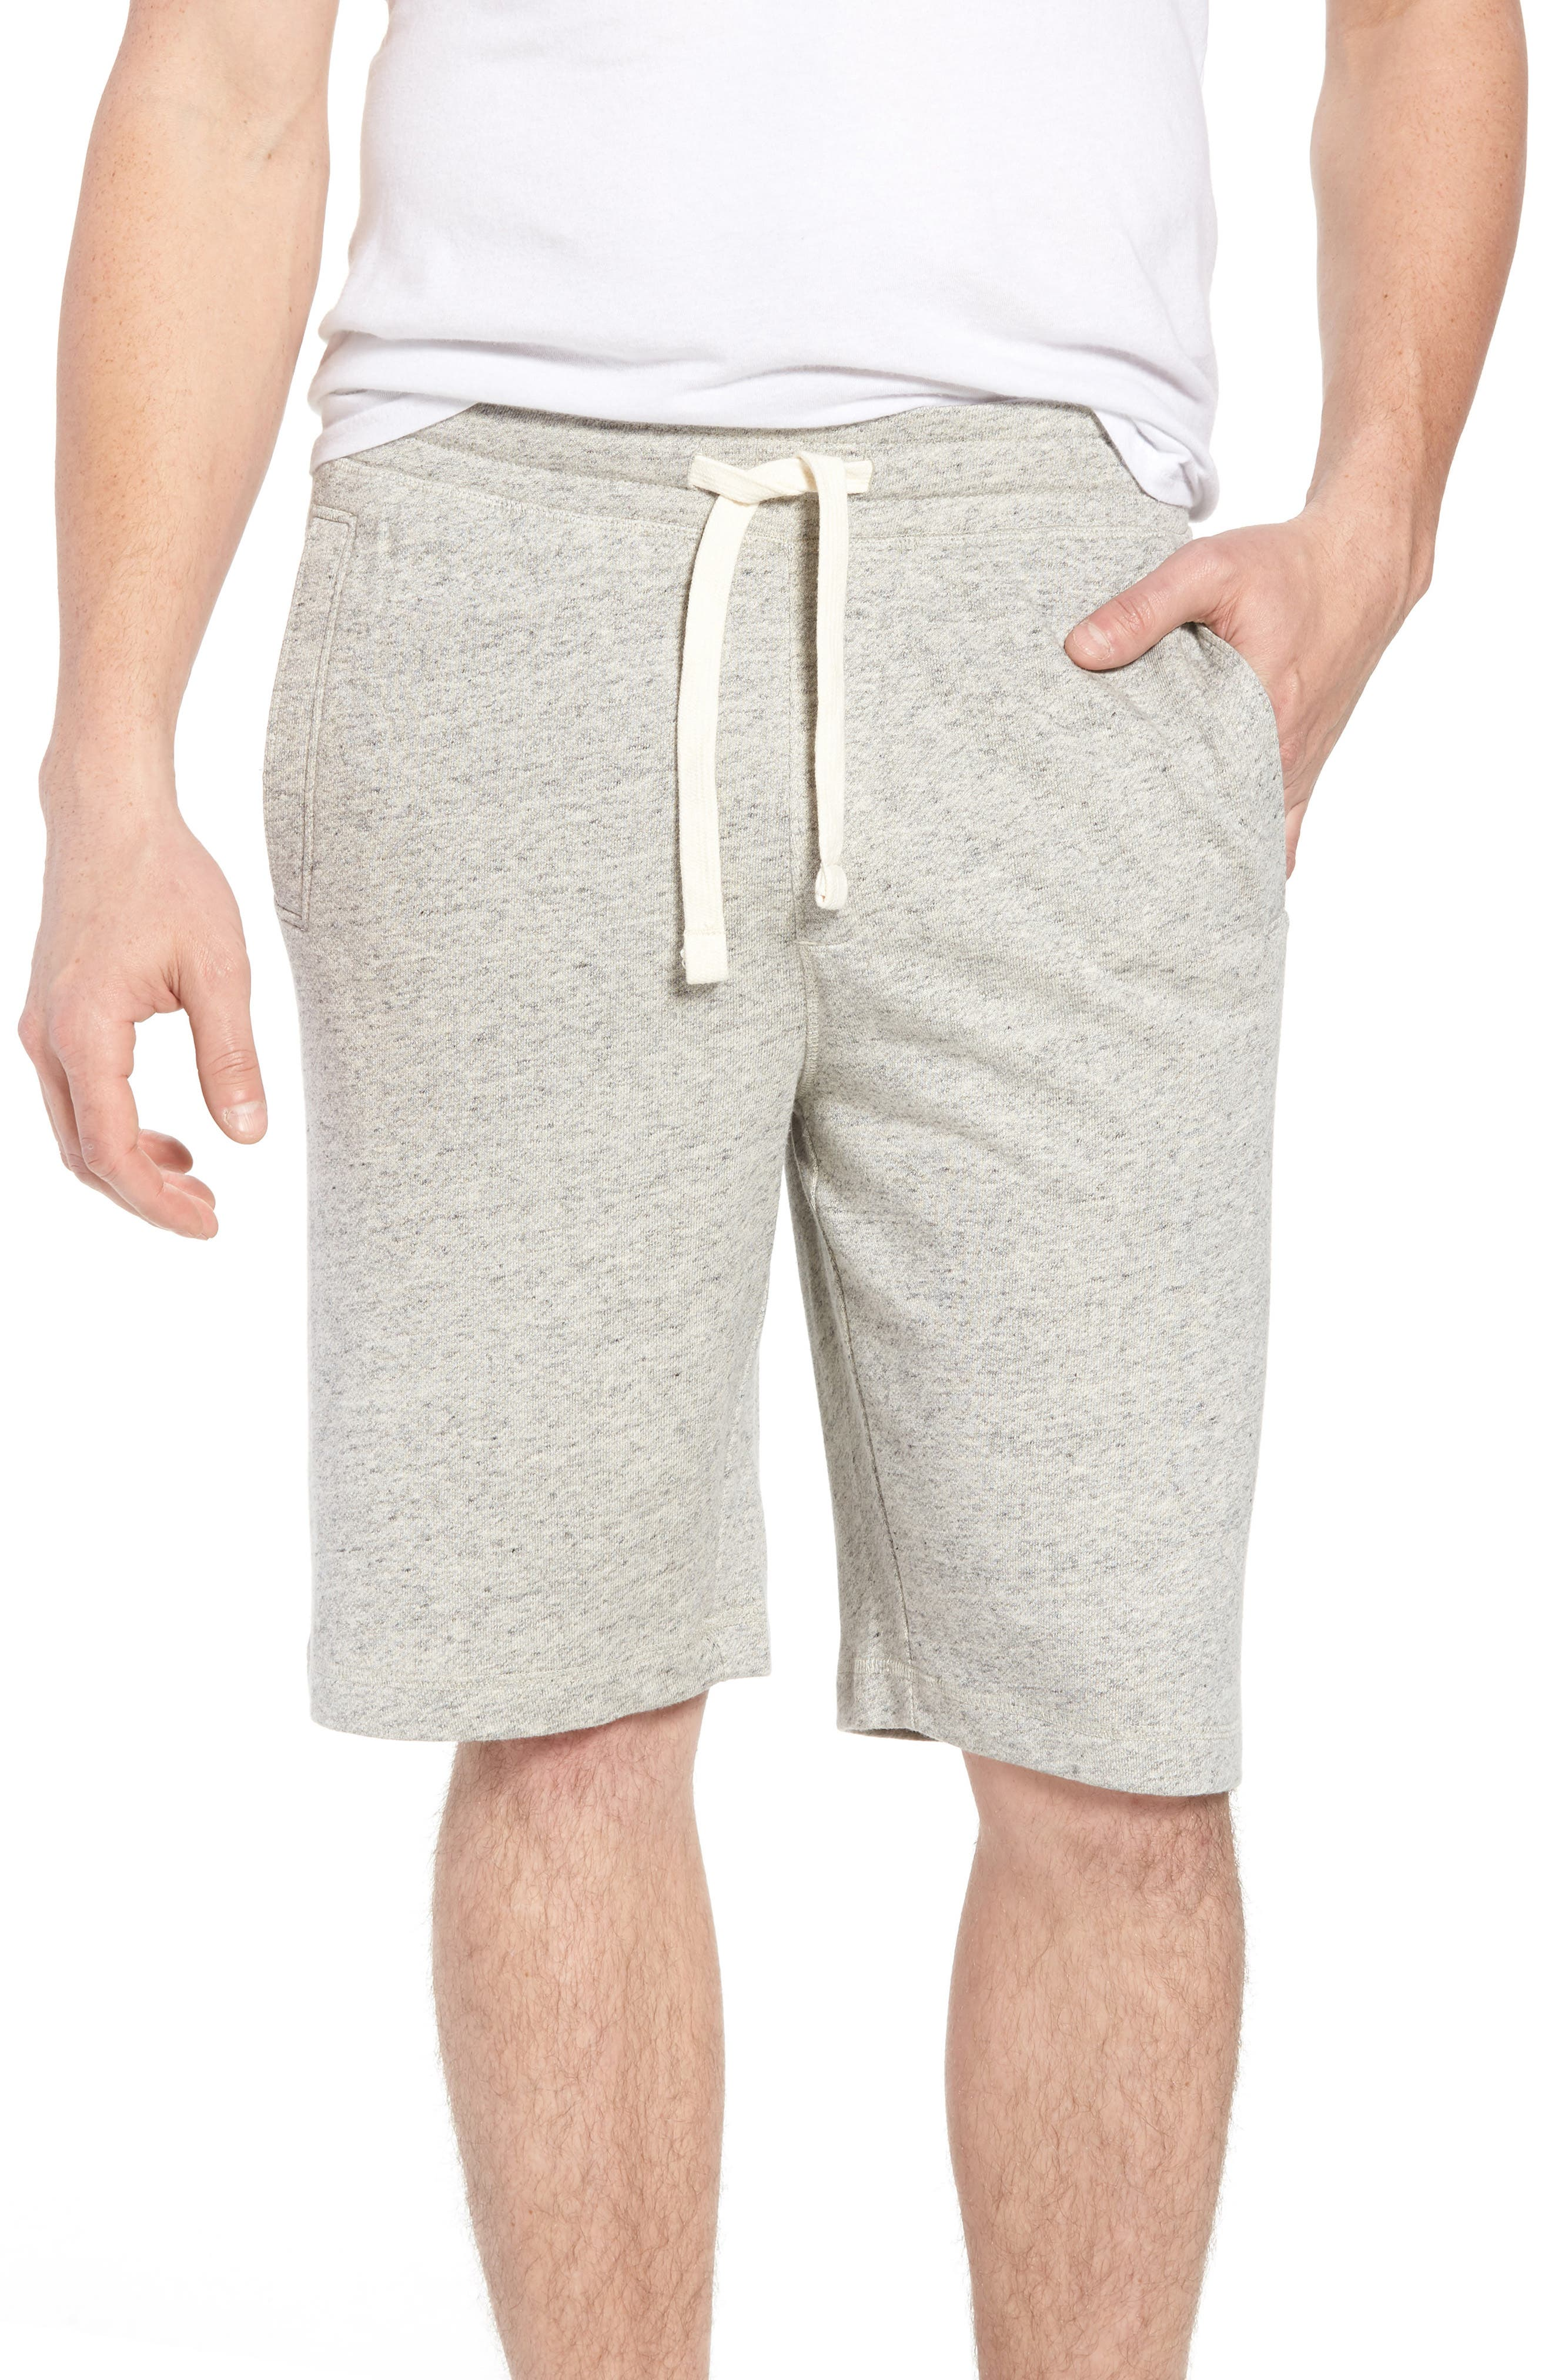 Stretch Cotton Terry Shorts,                             Main thumbnail 1, color,                             063